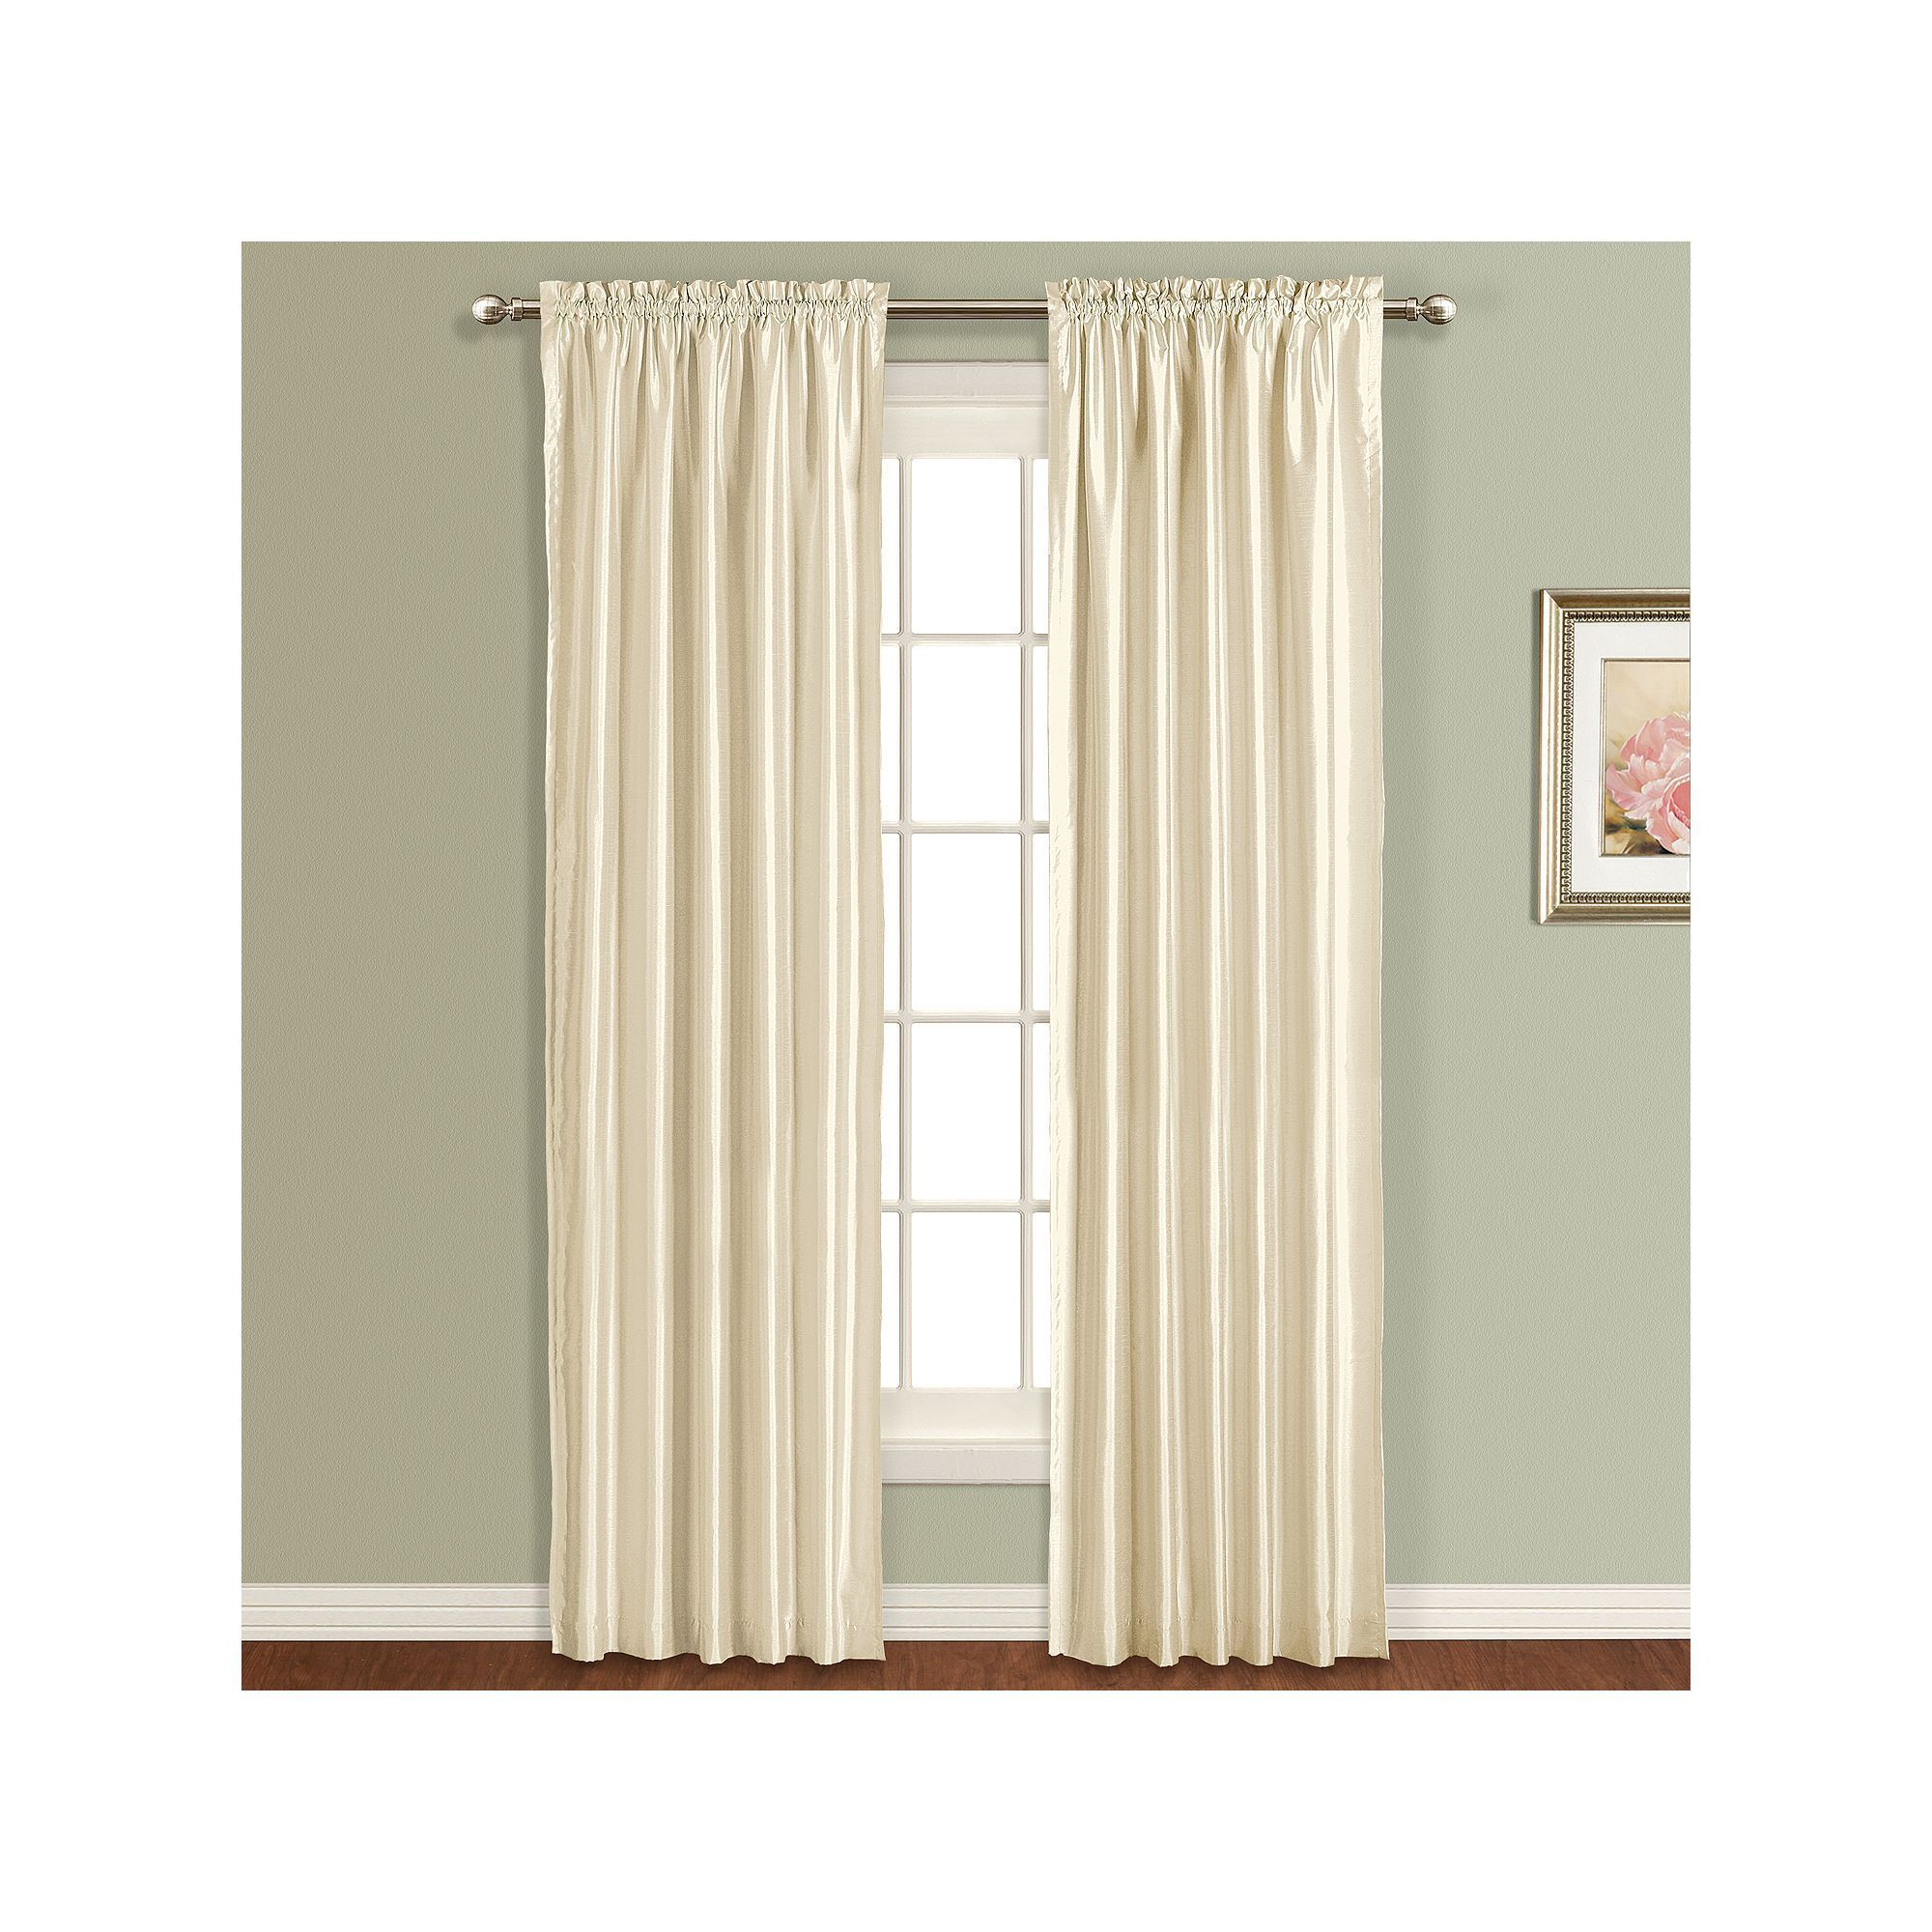 United Curtain Co Lincoln Lined Curtain, Beiggreen (Beigkhaki)